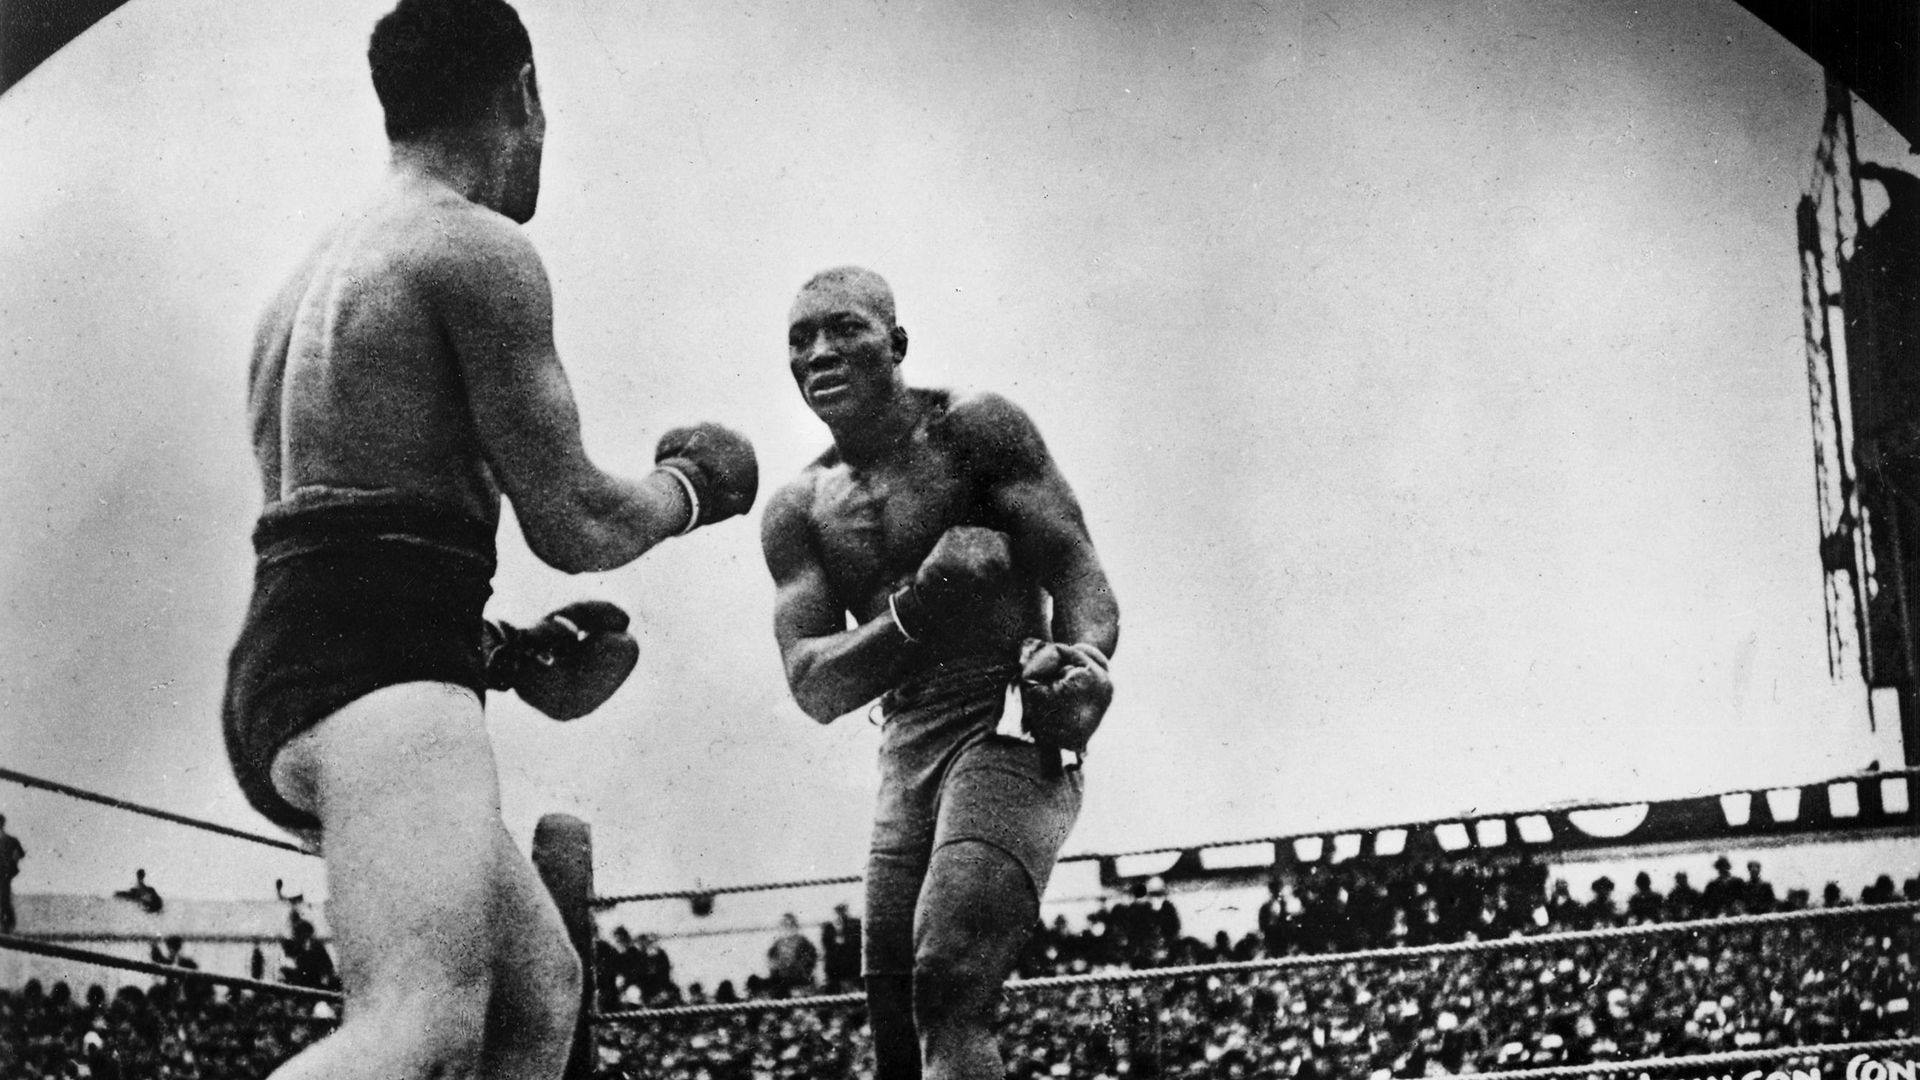 Black History Month: Story of The Galveston Giant